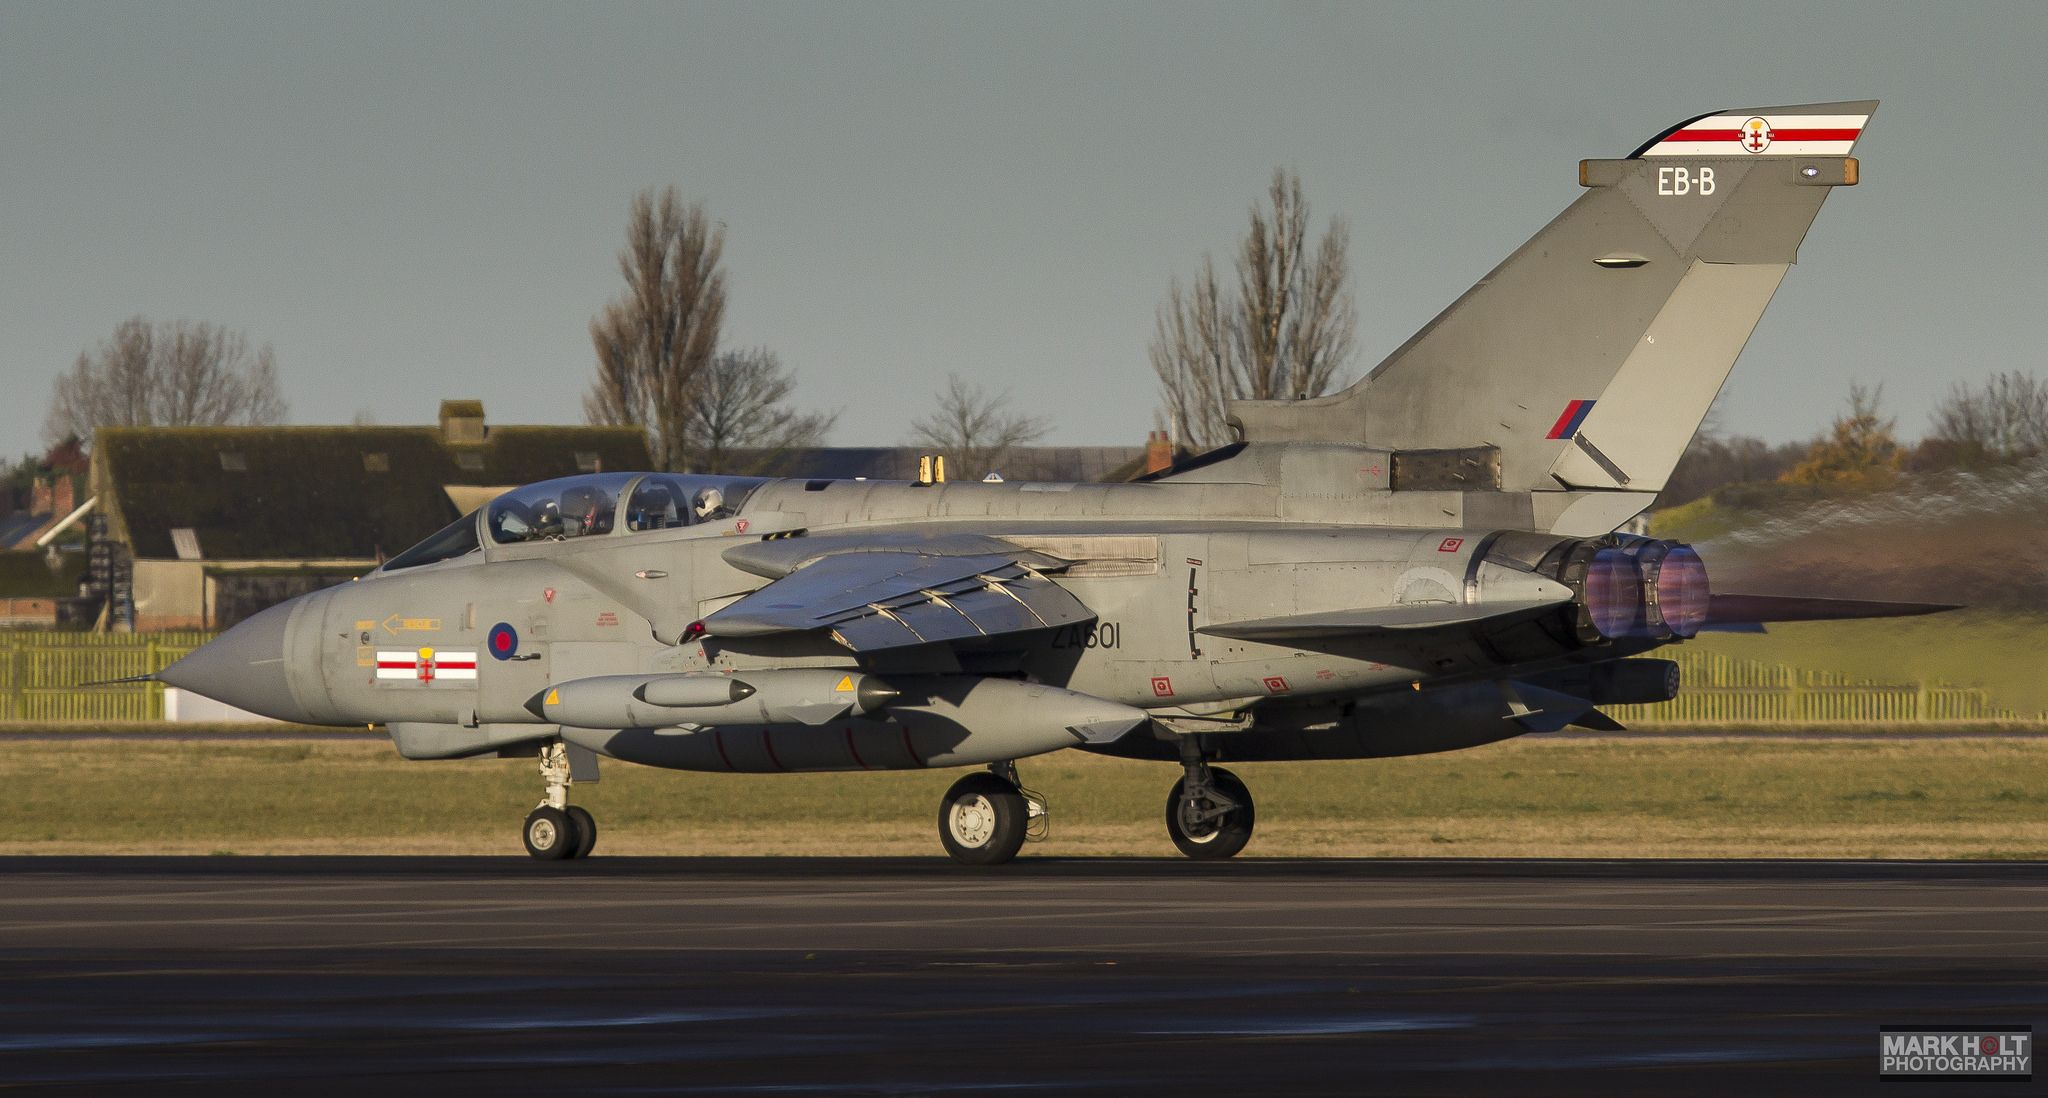 https://flic.kr/p/NkjsKt | ZA601 | 23rd November 2011 - Panavia Tornado GR4 'ZA601' of 41 Squadron lights the candles for a morning sortie out of RAF Coningsby.